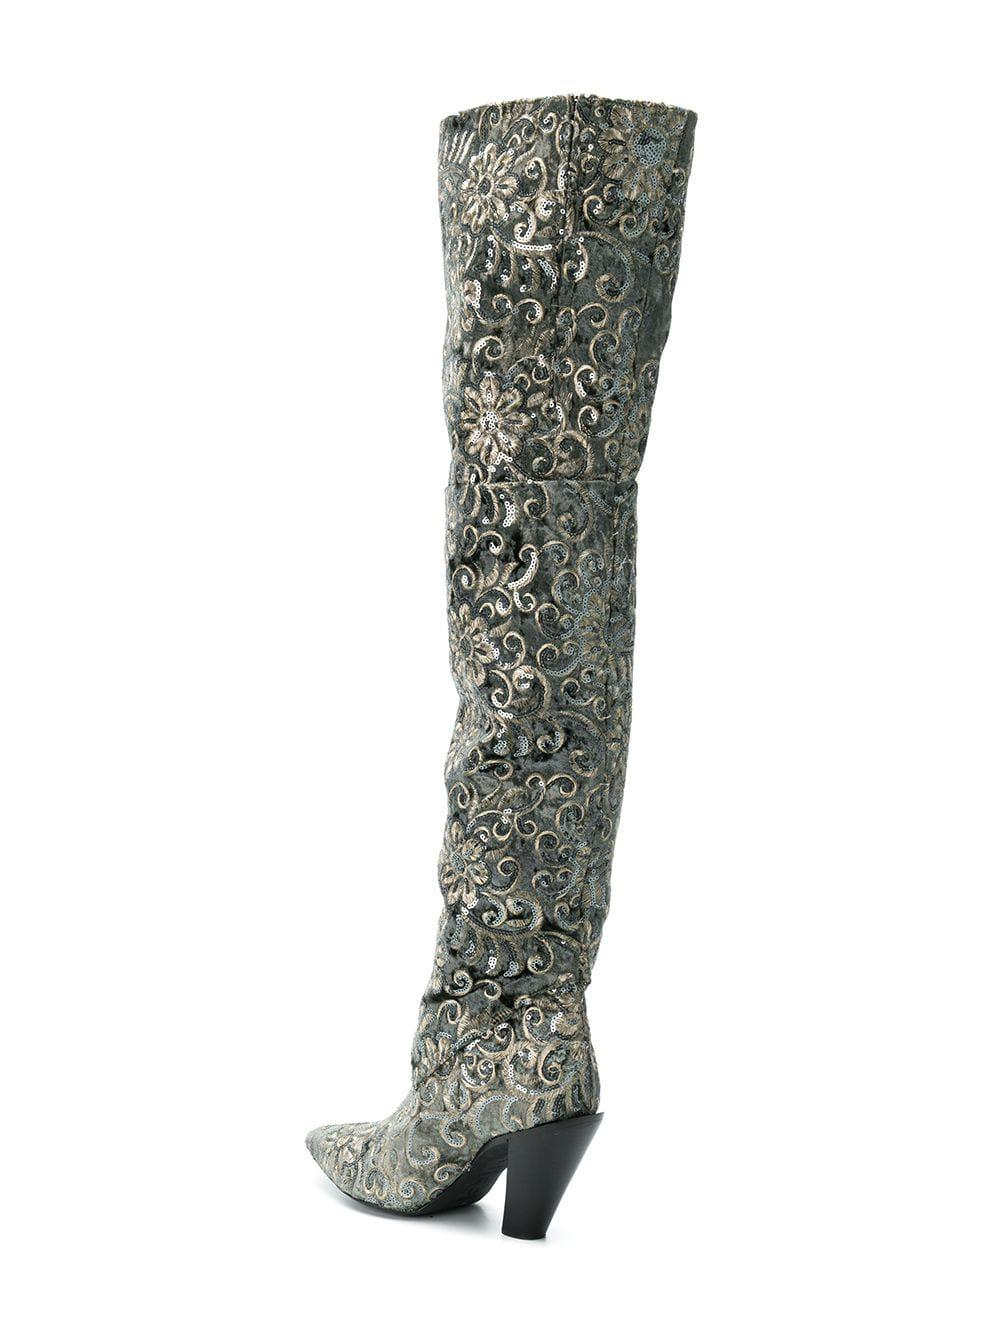 A.F.Vandevorst Contrast Thigh-high Boots in Green - Lyst ef47fc5317f